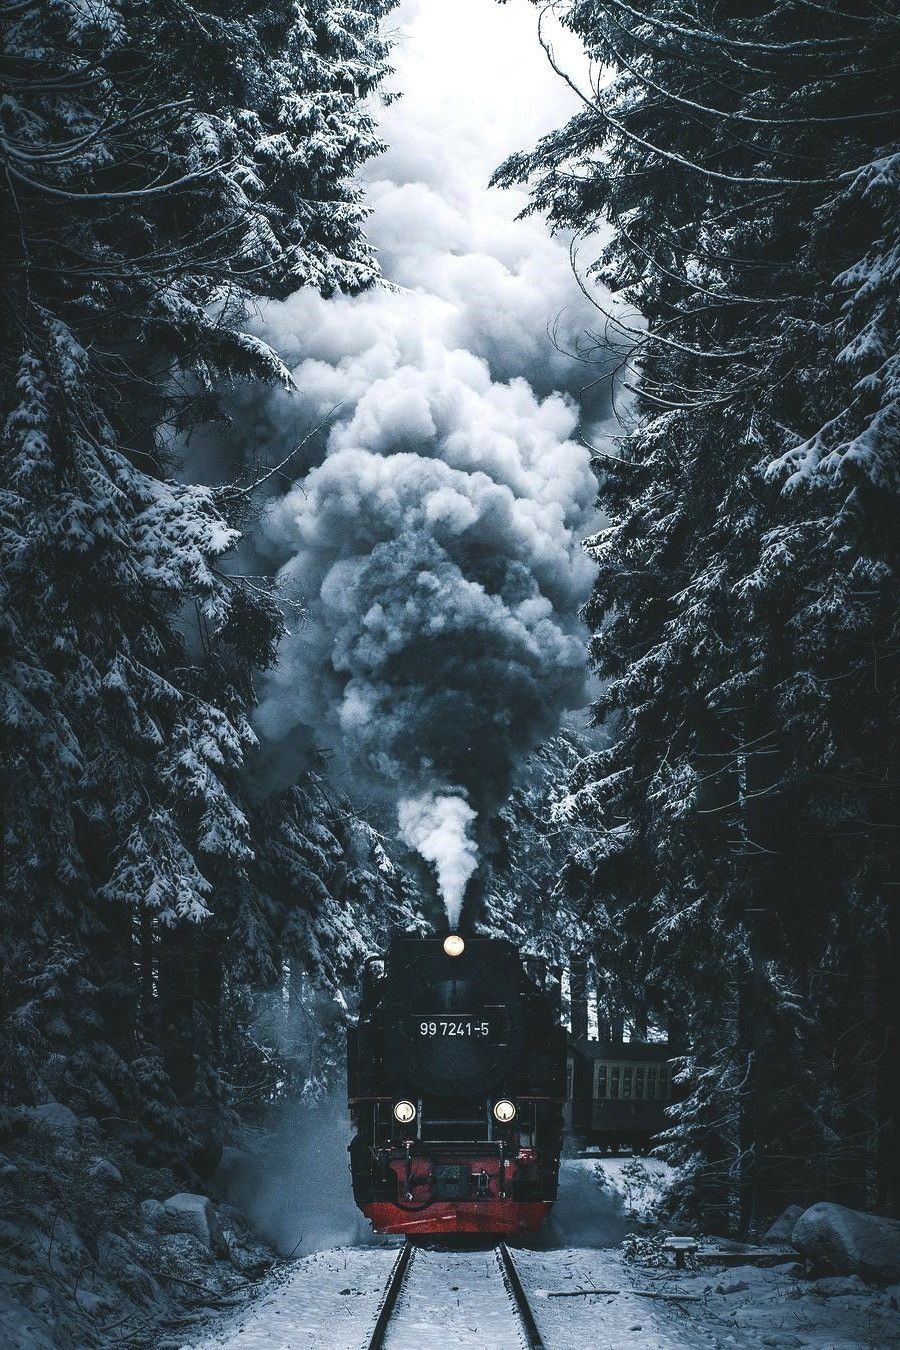 Pin By Jay Driguez On Beauty Scenery Iphone Wallpaper Winter